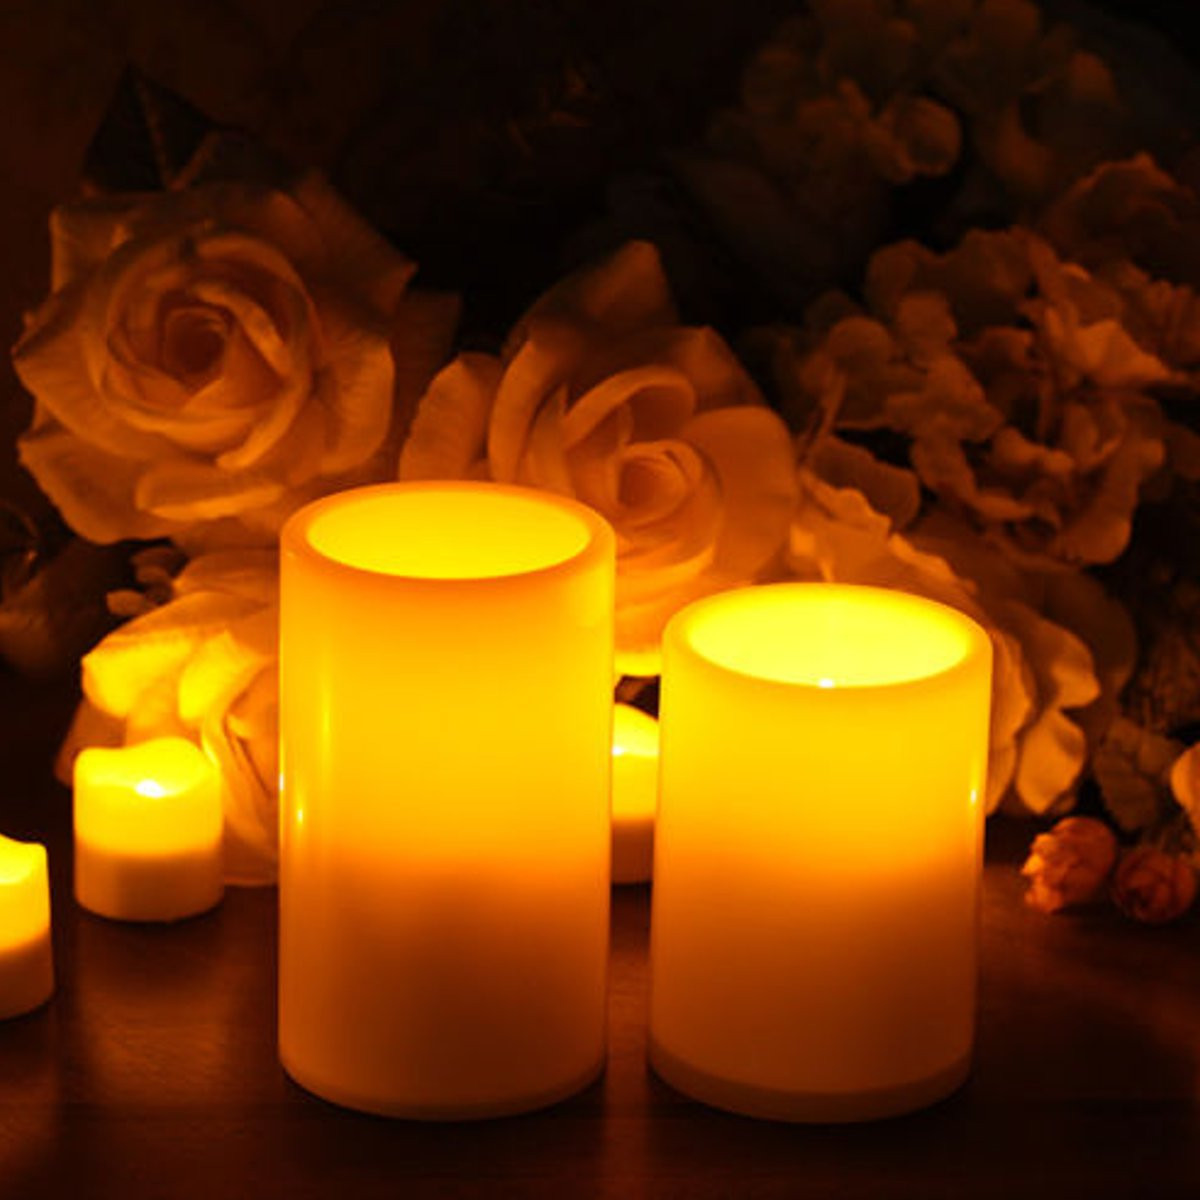 Battery powered flameless led candle flickering tea light christmas wedding home decor alex nld - Appealing christmas led candles for christmas decorations ...